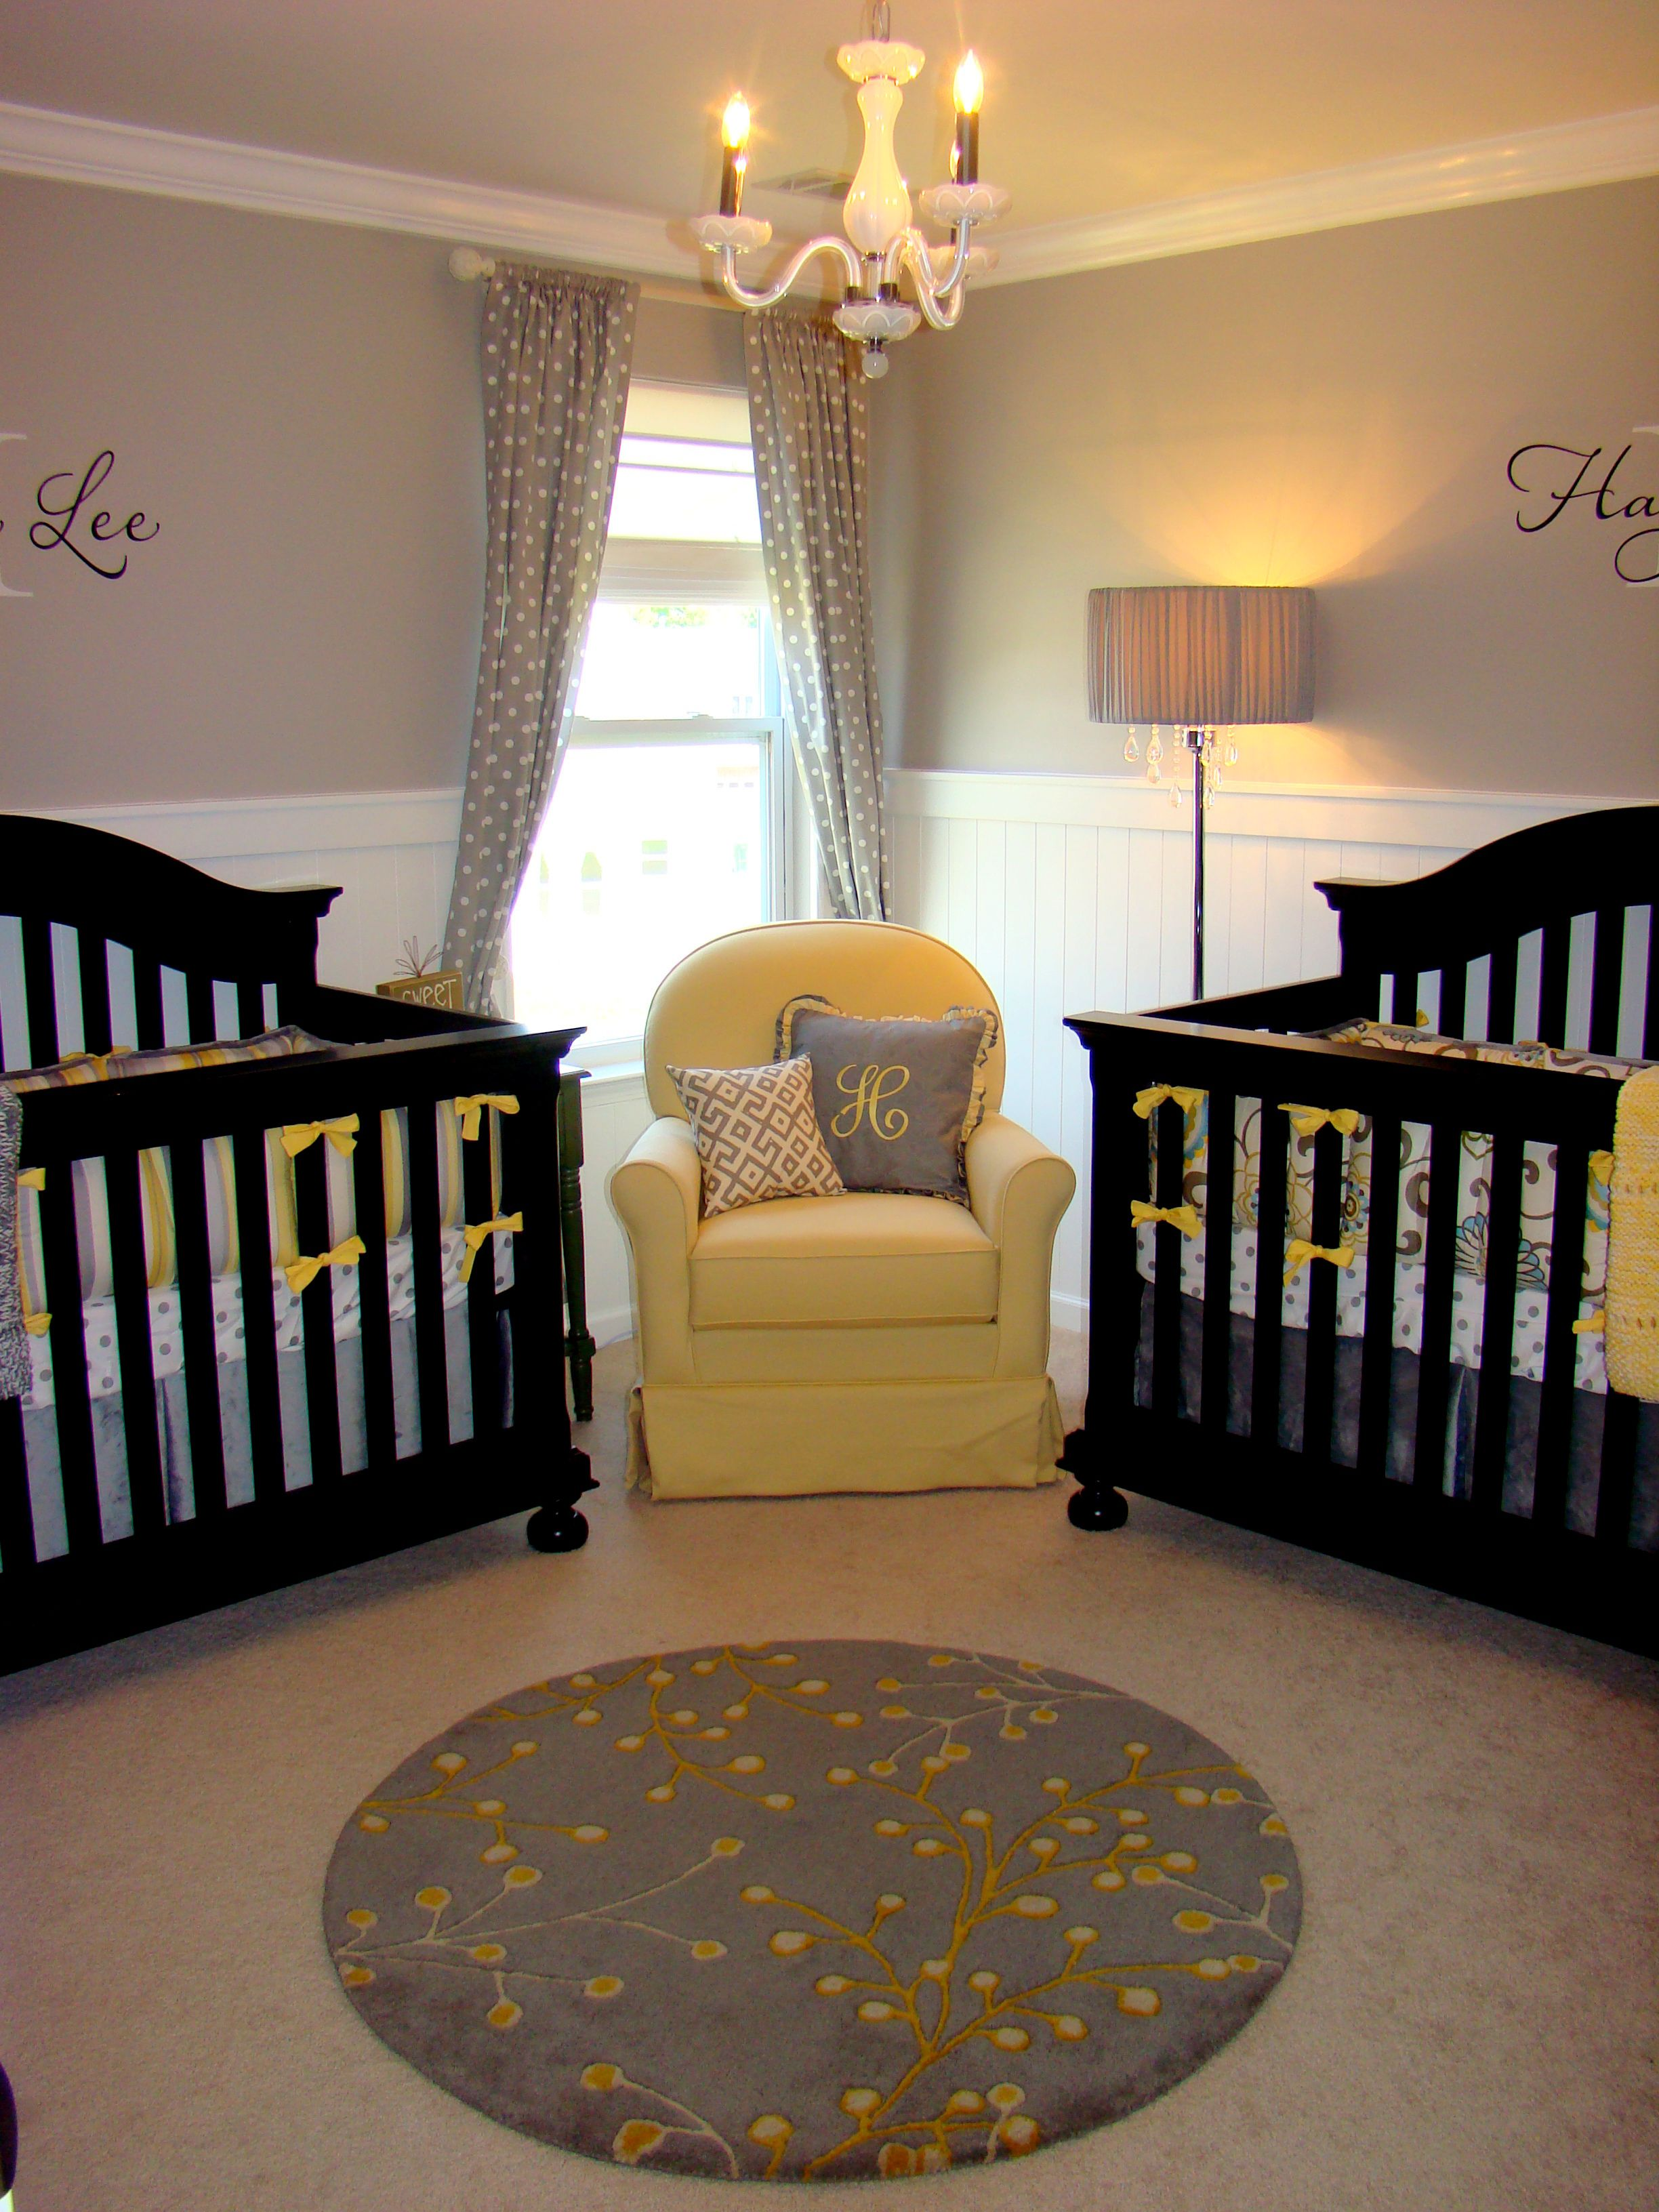 If I Have Twins Love This Lay Out Not The Stuff In It Lol